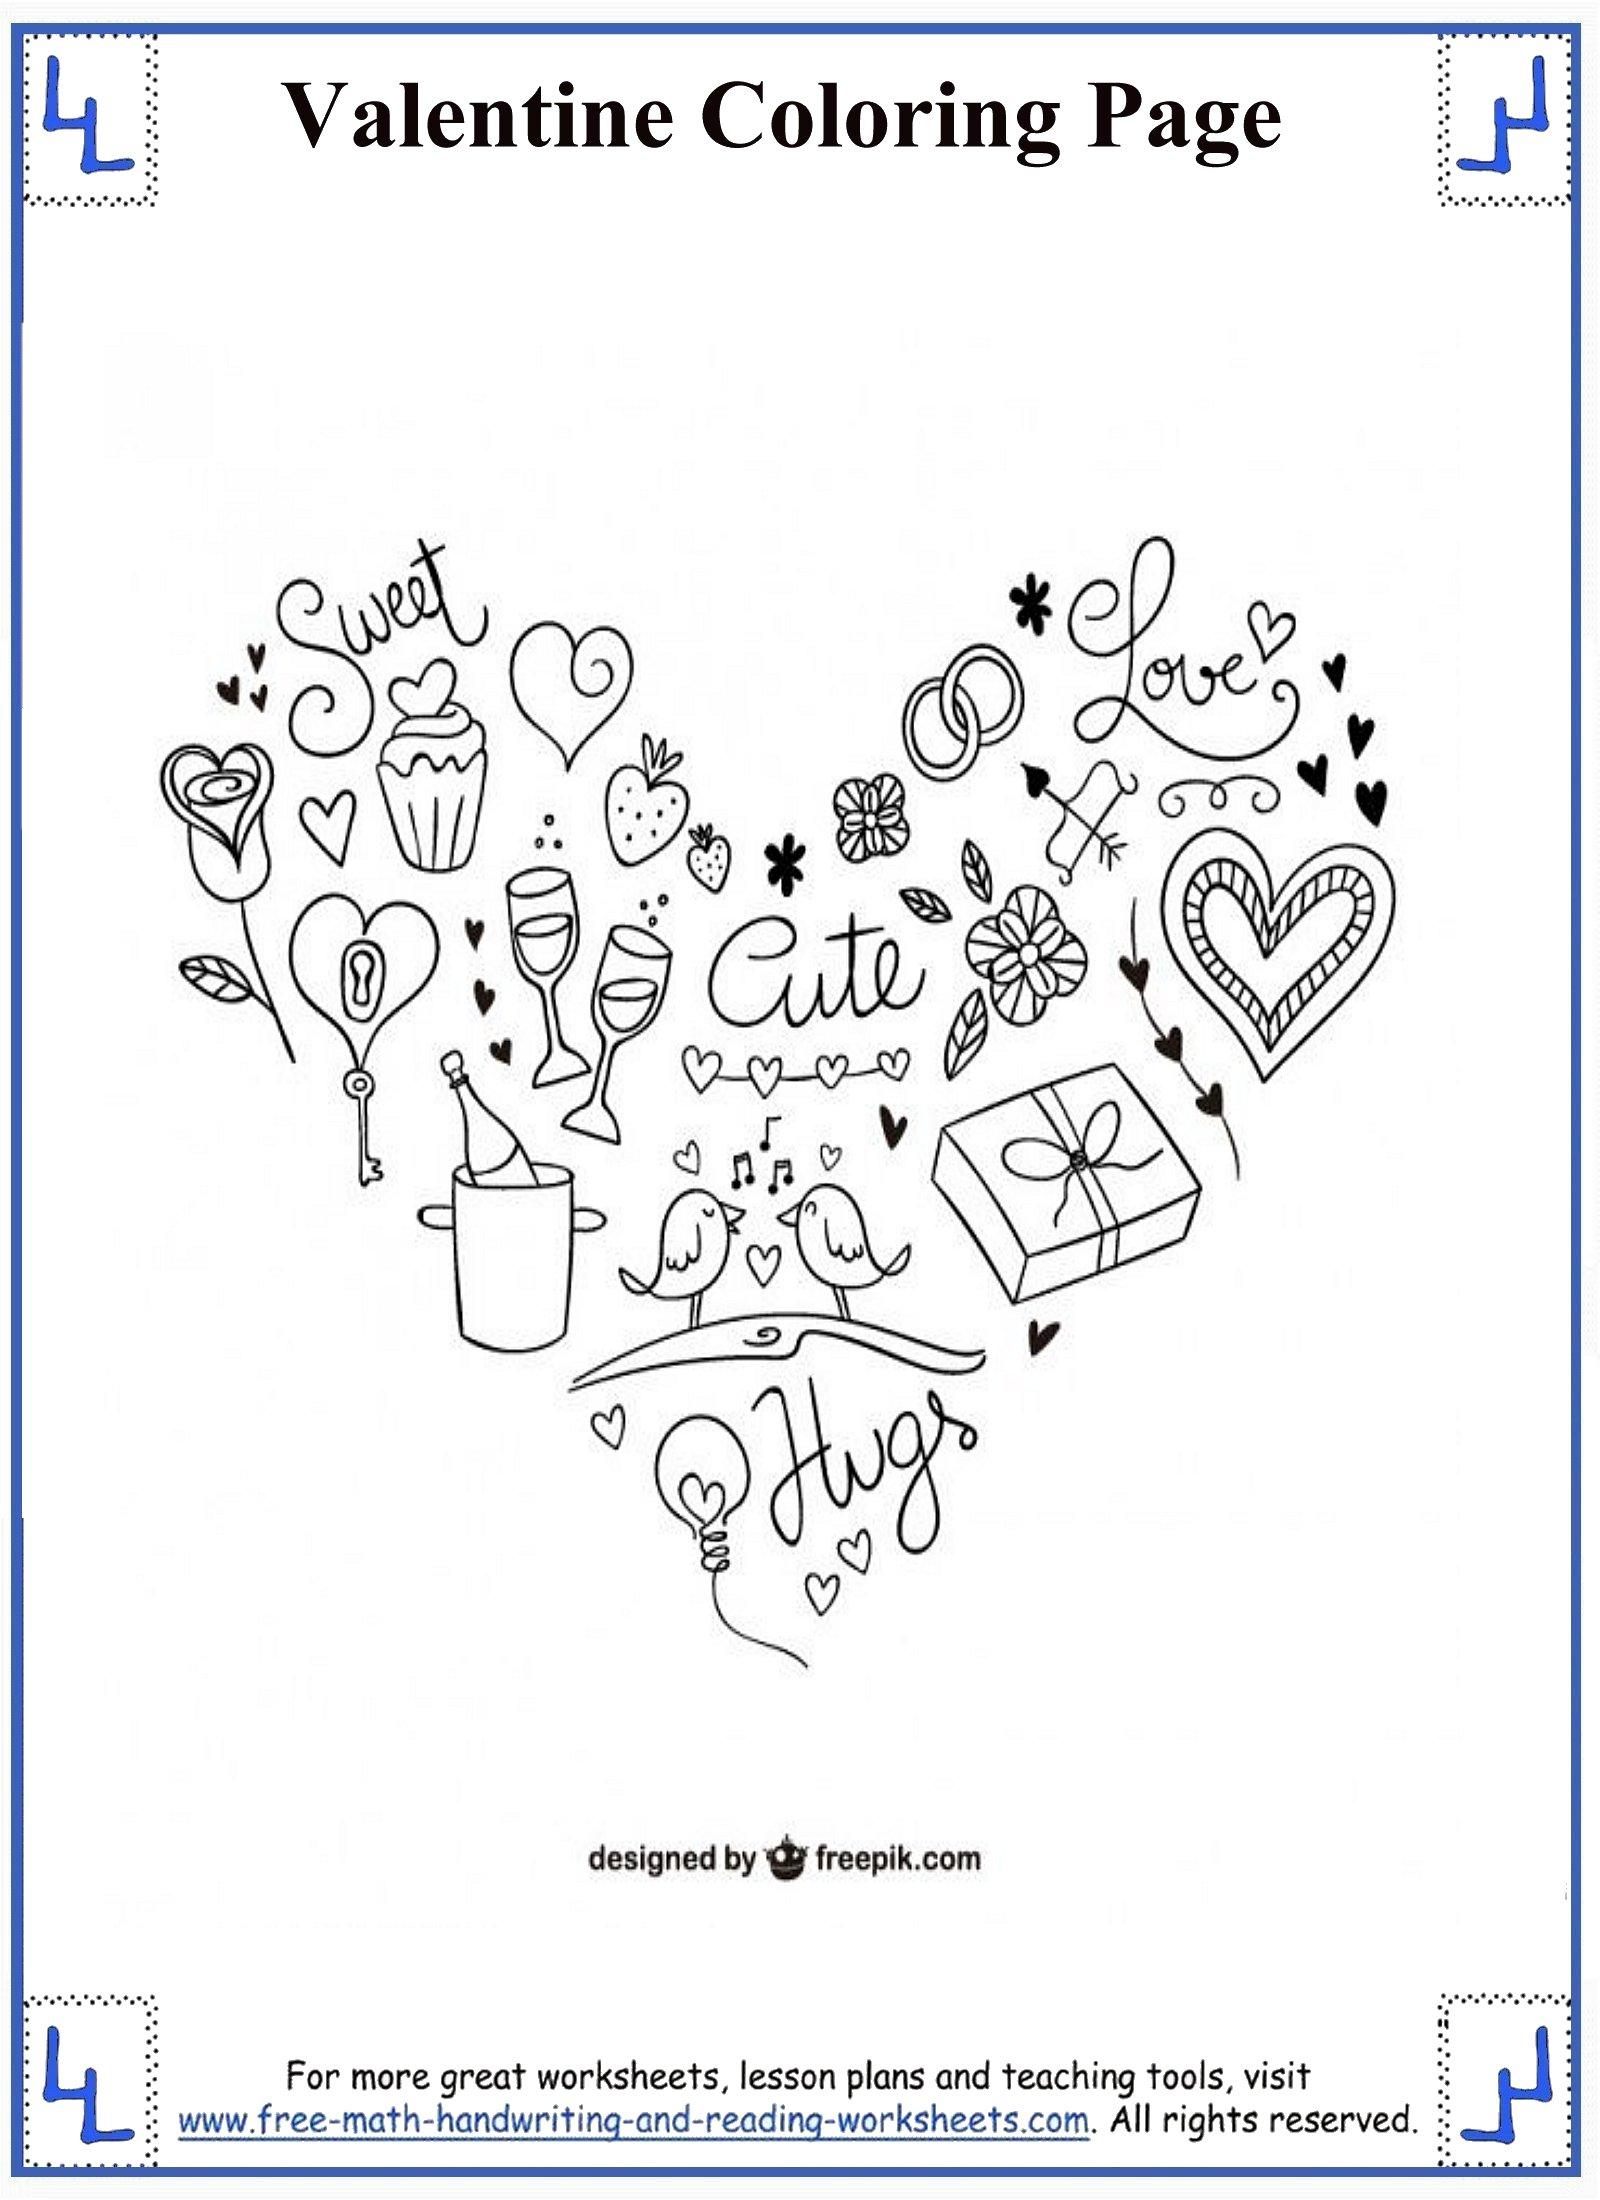 valentines day coloring pages. Black Bedroom Furniture Sets. Home Design Ideas